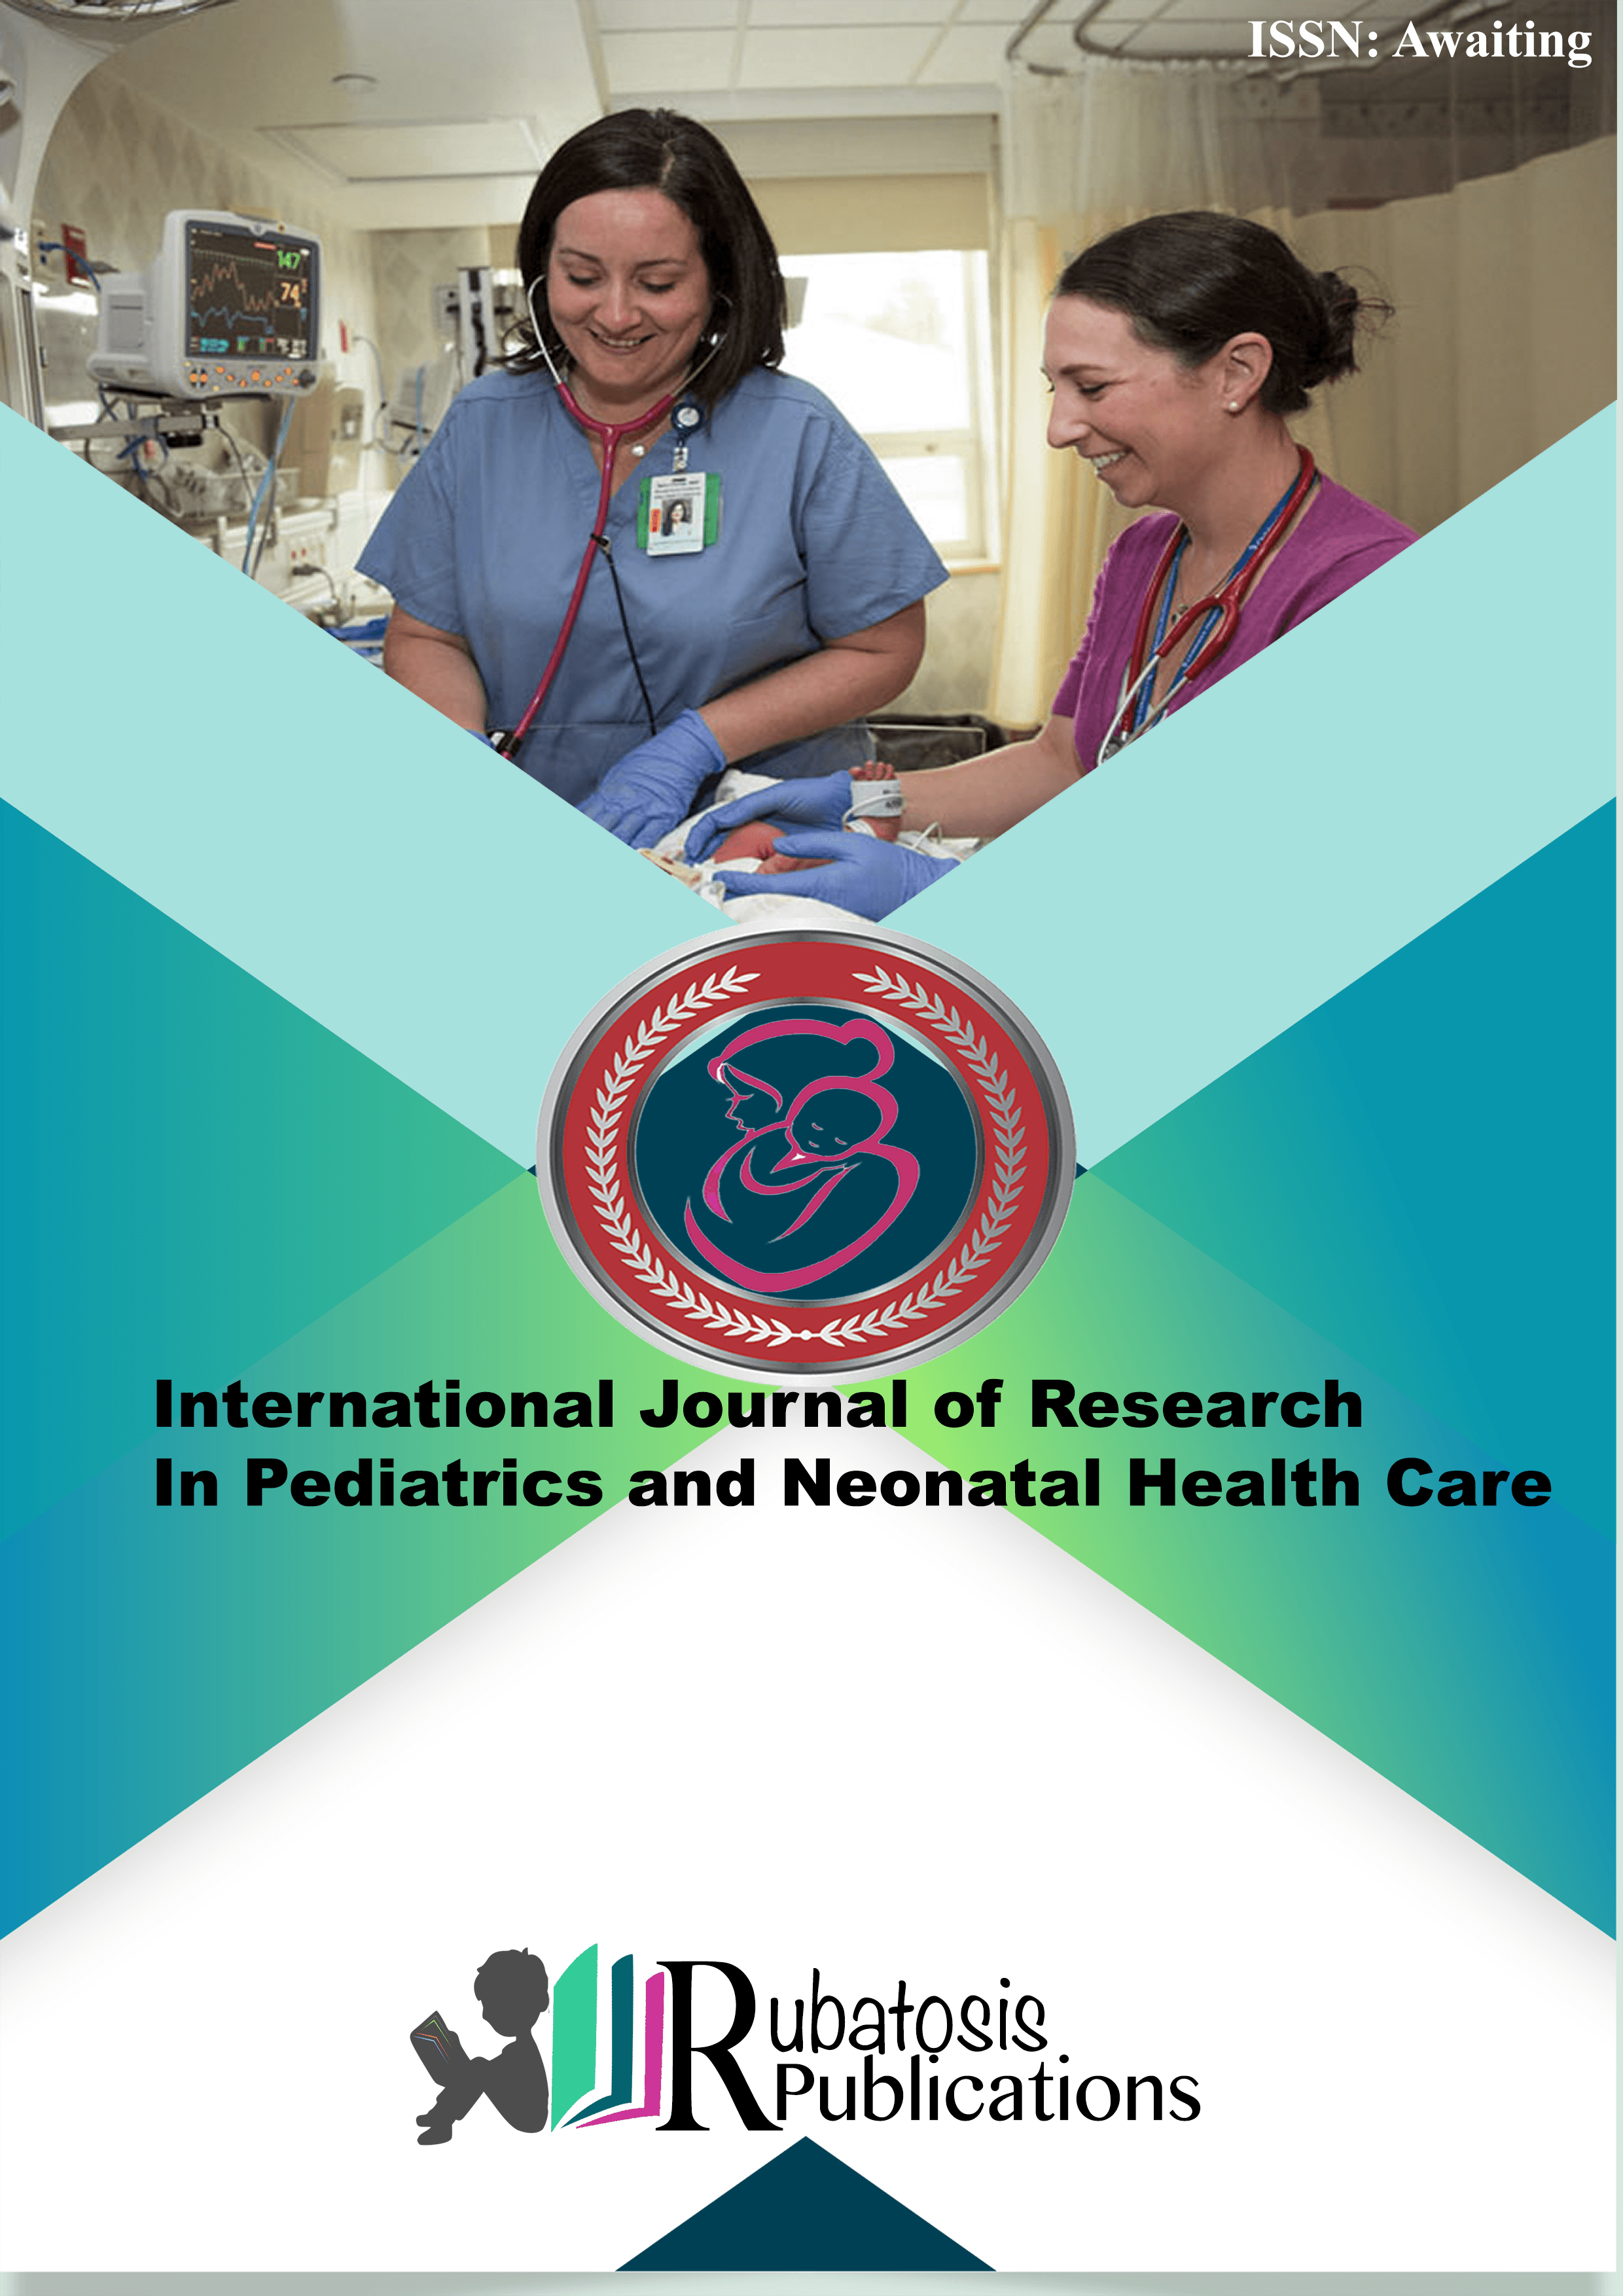 International Journal of Research In Pediatrics And Neonatal Health Care